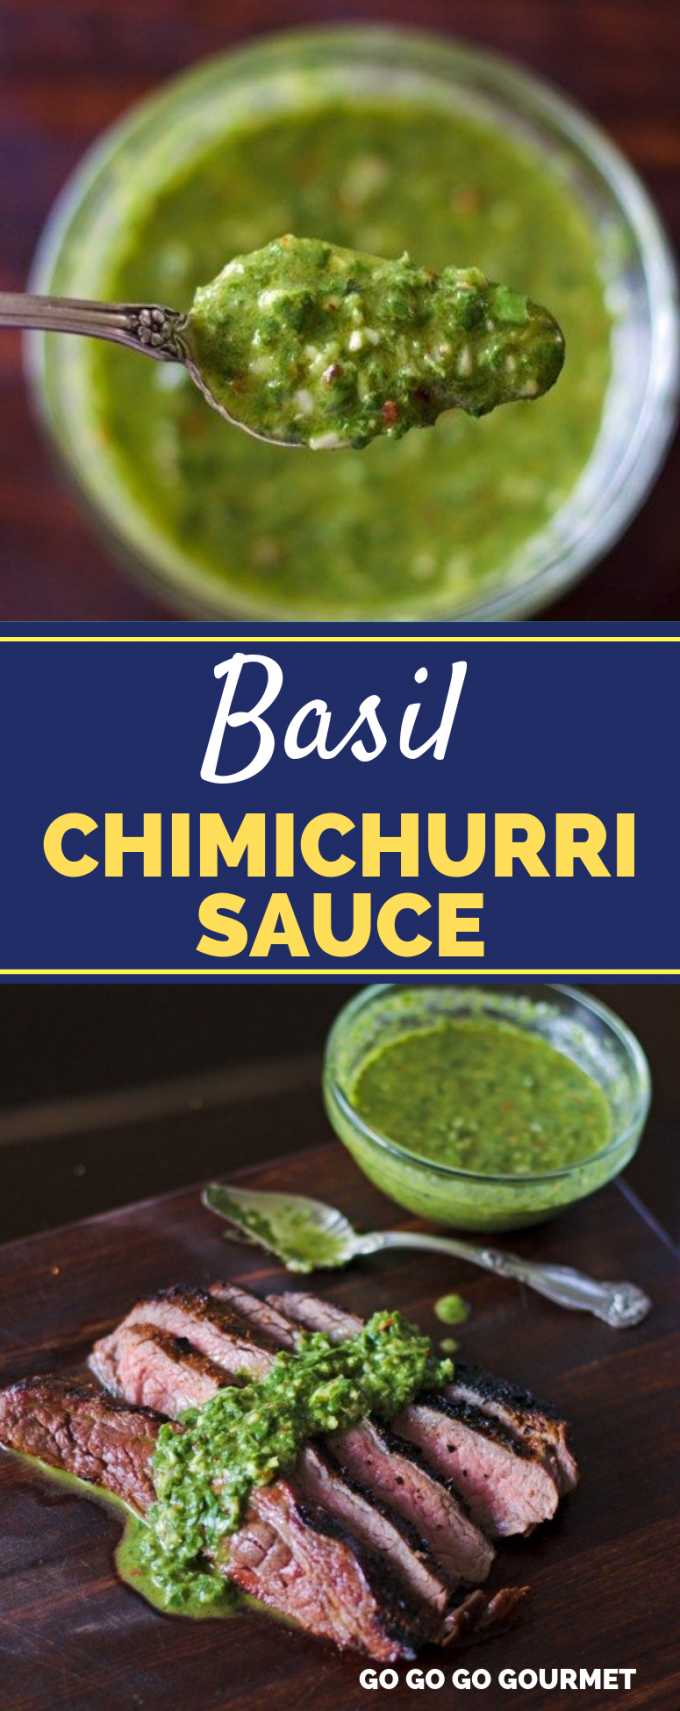 This easy Basil Chimichurri Sauce recipe is perfect for topping flank steak, chicken, or even grilled shrimp! Out of all of the sauces, this recipe is my absolute favorite! #gogogogourmet #basilchimichurri #basilchimichurrisauce #steakmarinade via @gogogogourmet